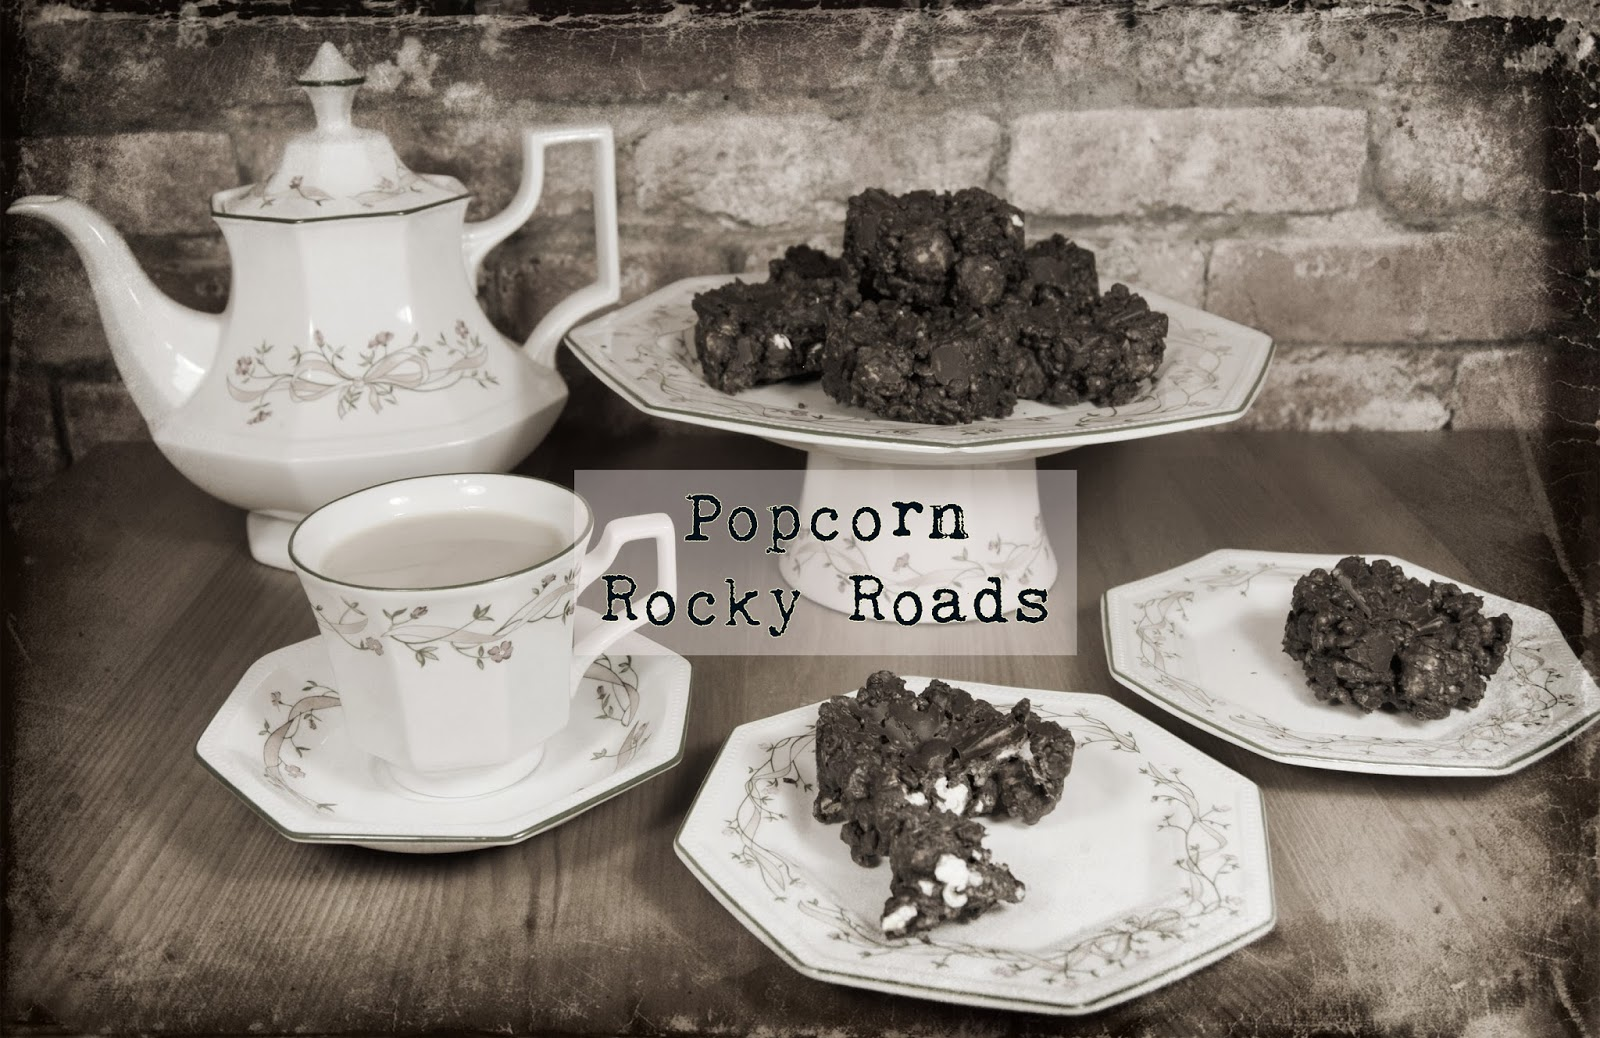 Popcorn Rocky Roads And How To Make Some